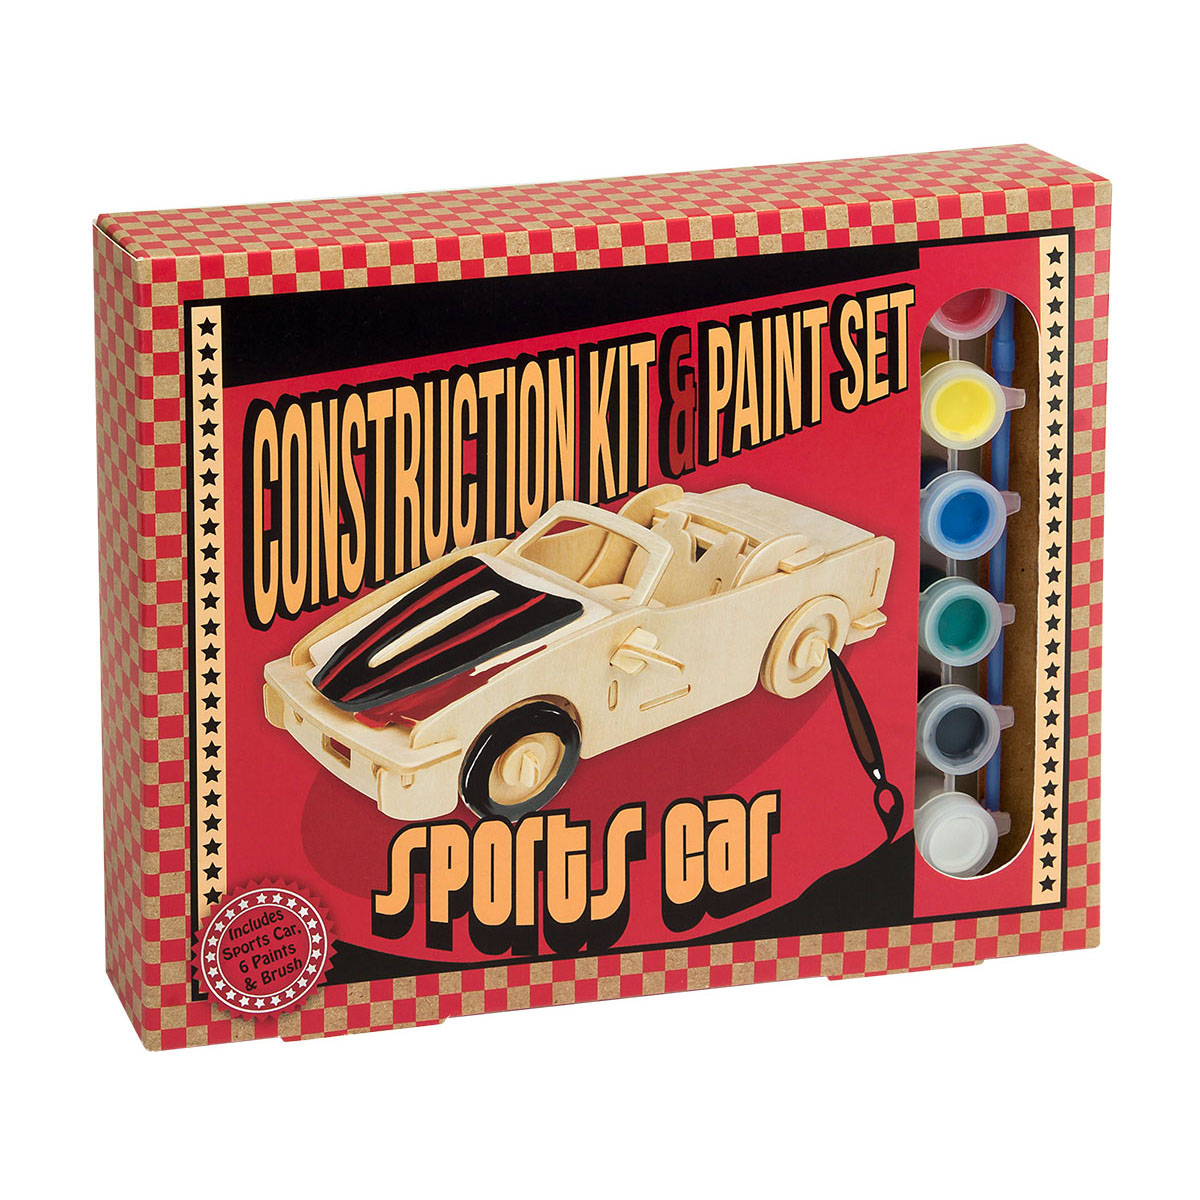 Construction Kit and Paint Sets - Sports Car